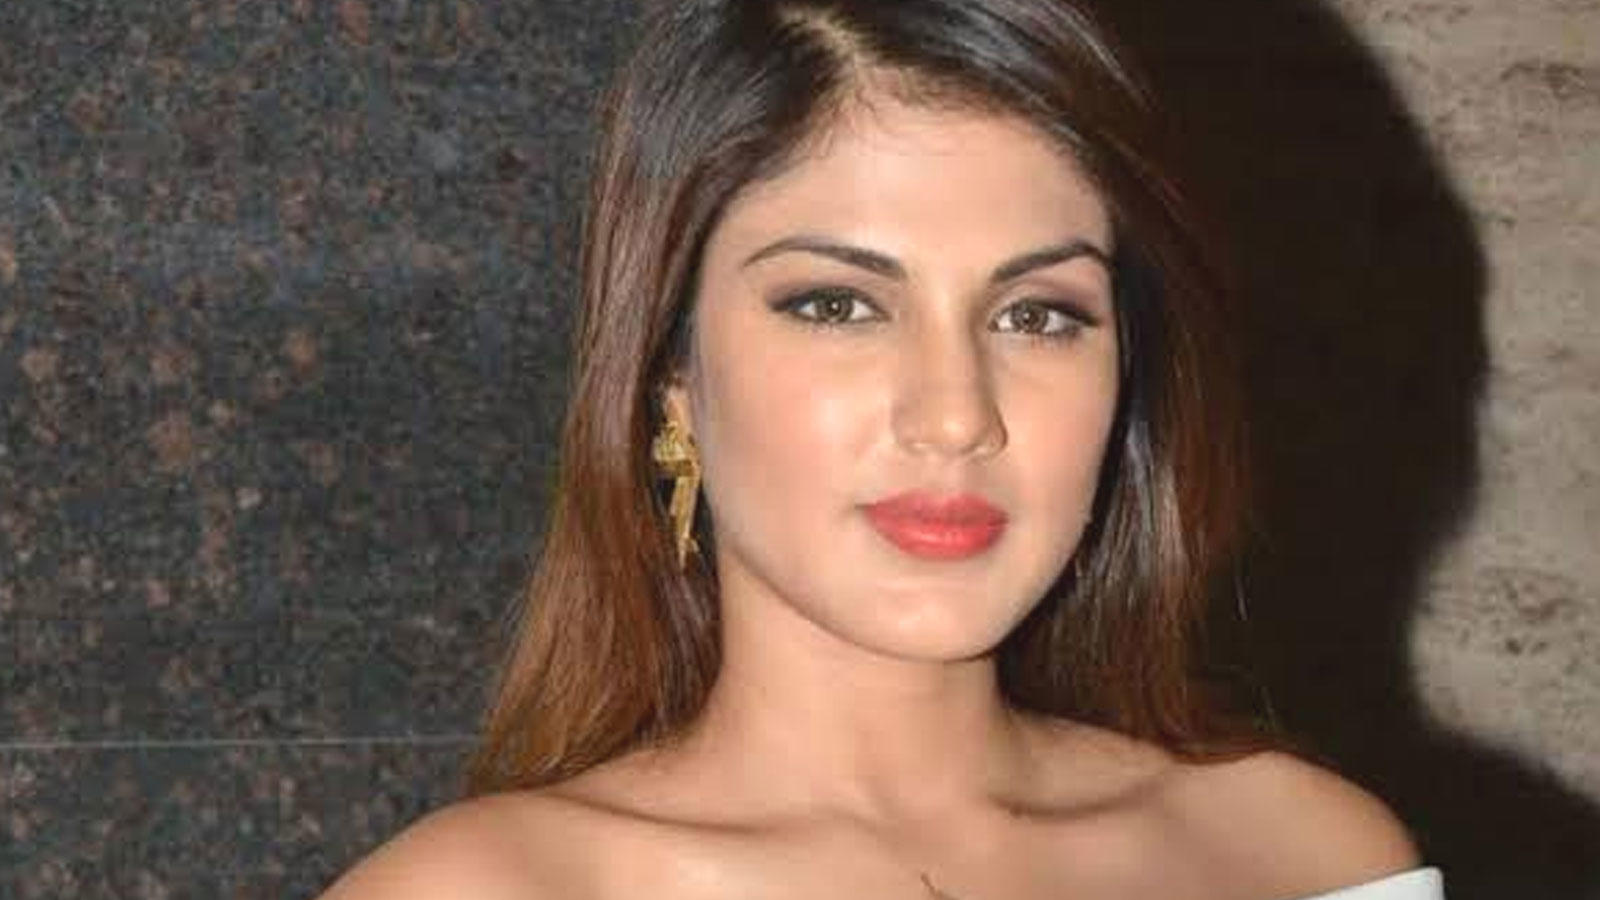 tough-times-call-for-unity-says-rhea-chakraborty-as-she-offers-help-to-those-in-need-amid-covid-19-pandemic